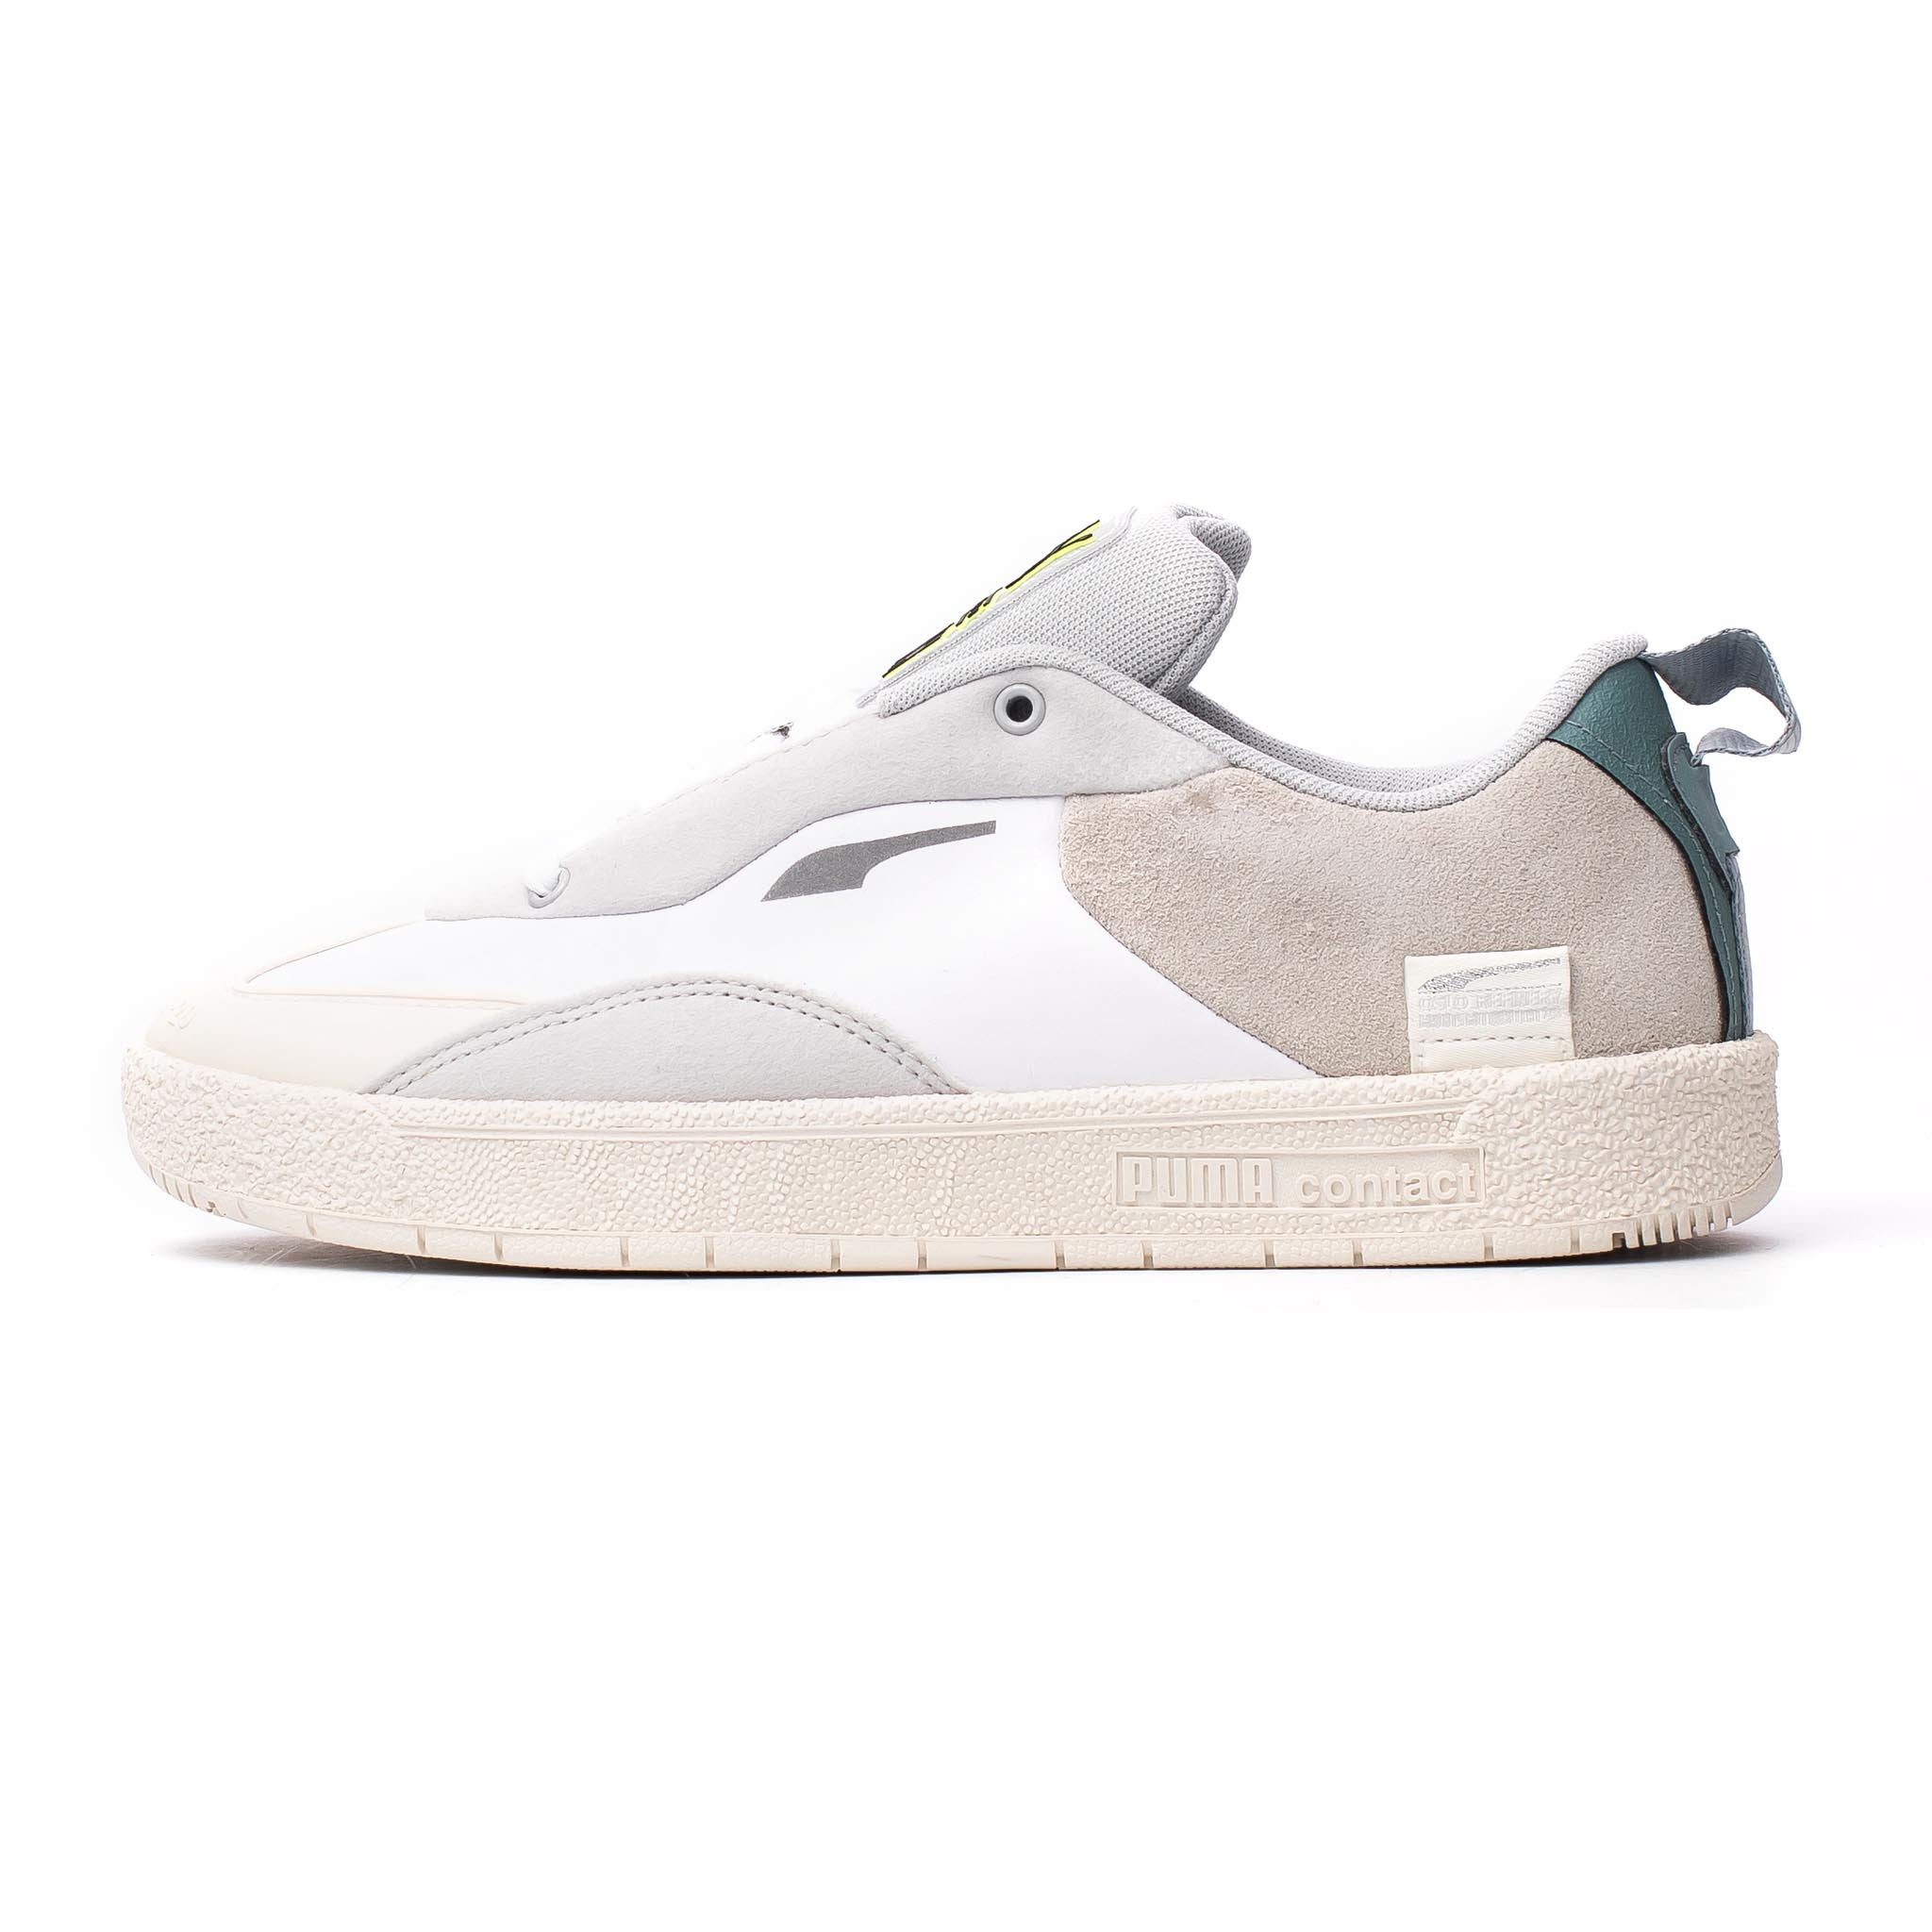 Puma x Helly Hansen Oslo-City White/Glacier Grey